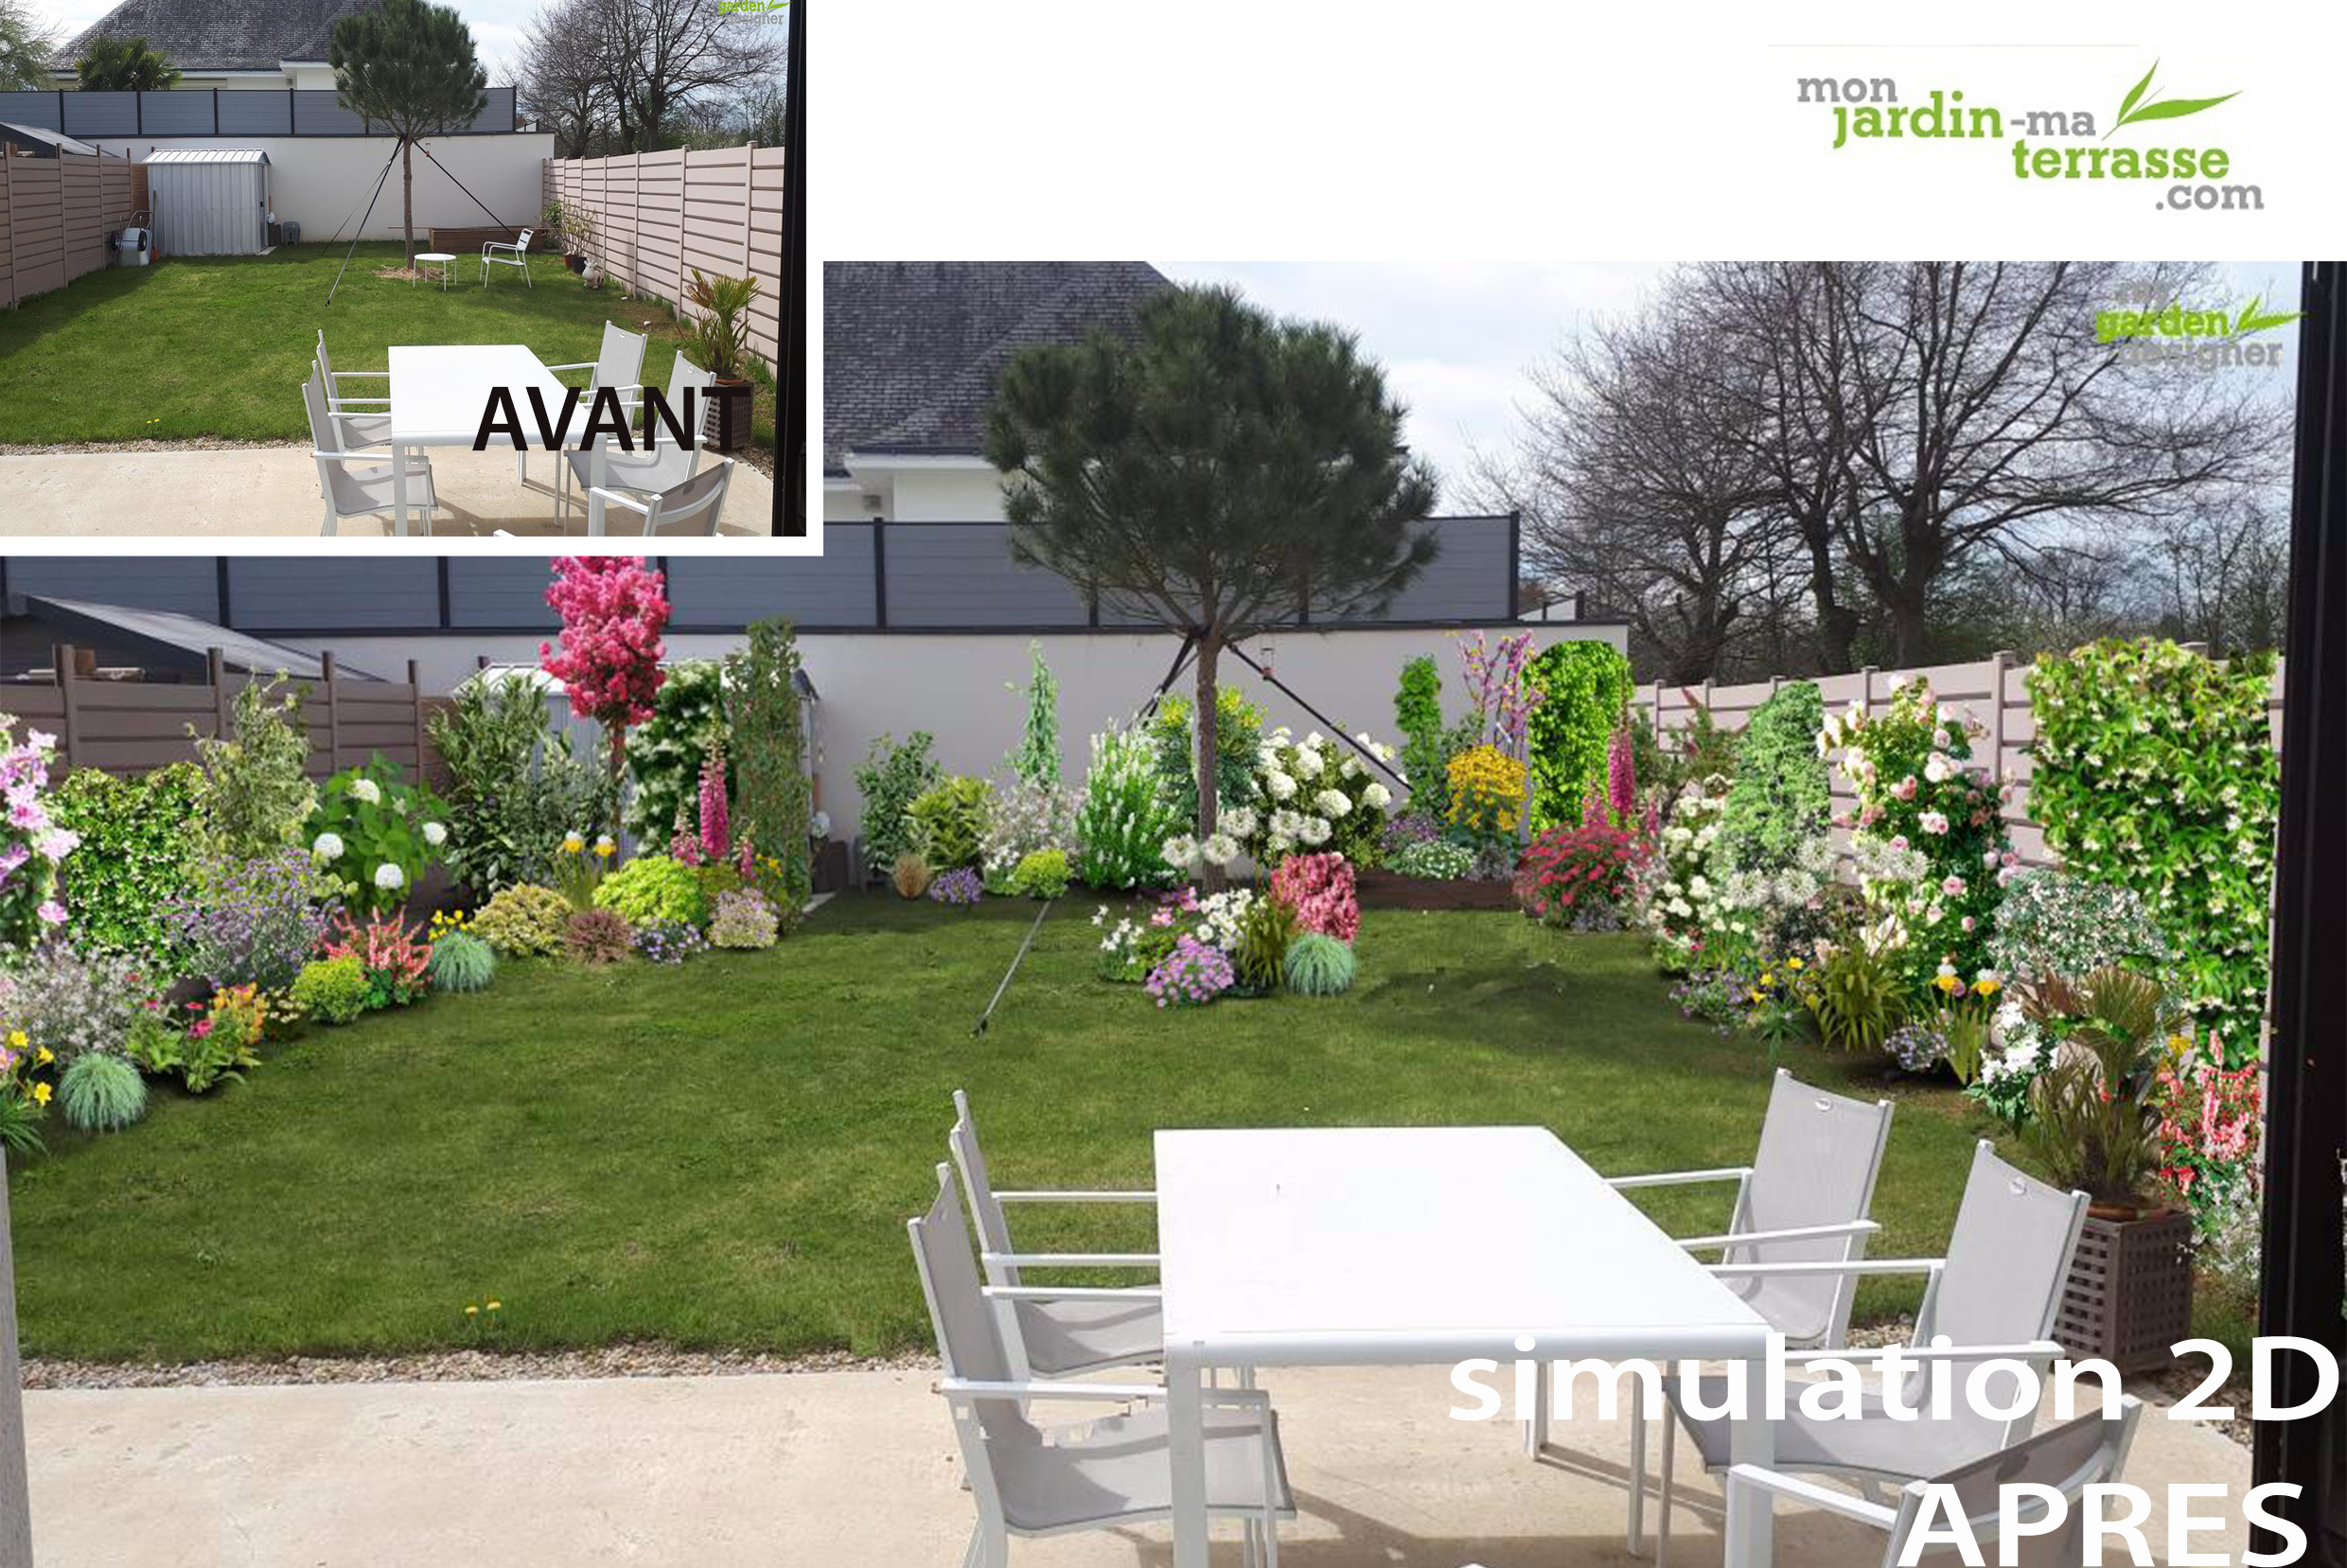 Exemple de jardin paysager exemple d amenagement de for Exemple d amenagement de jardin